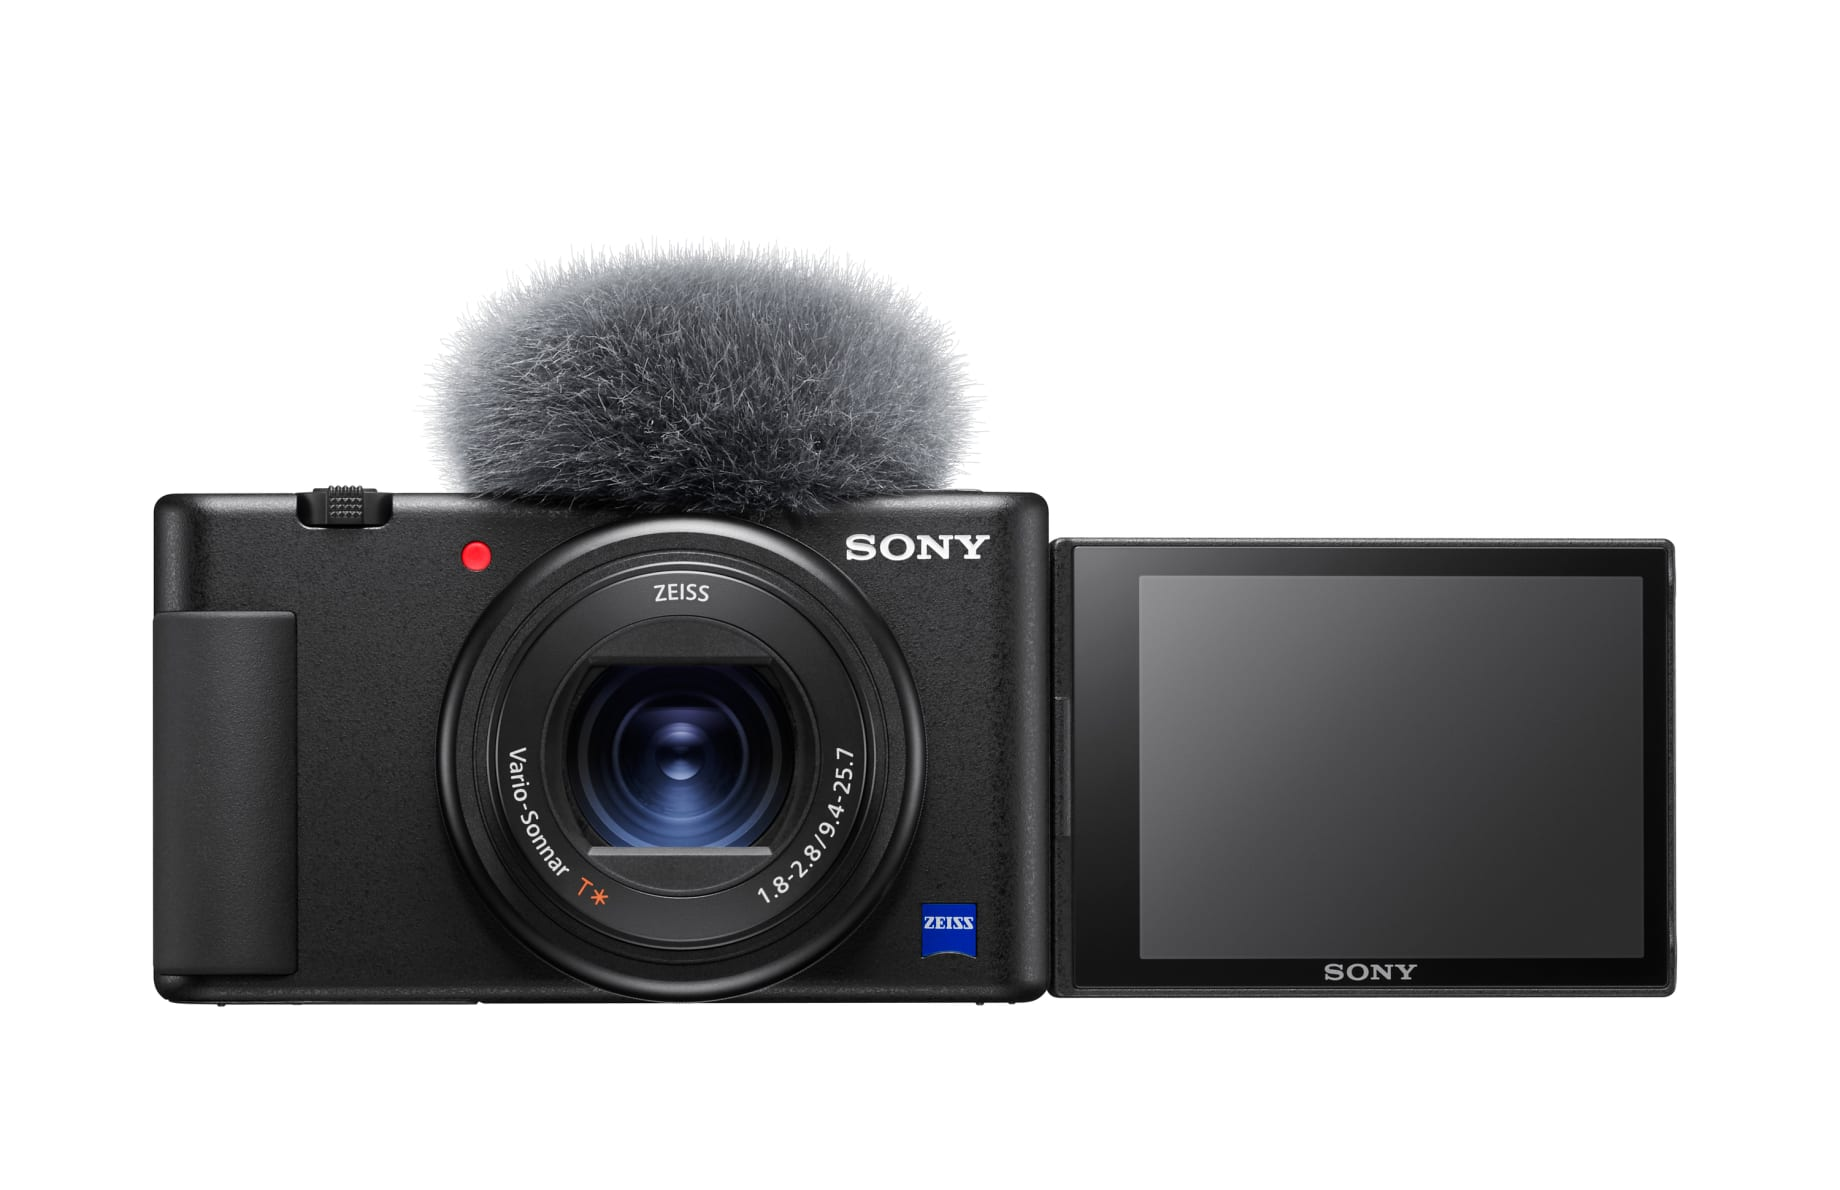 The Sony ZV-1 vlogging camera